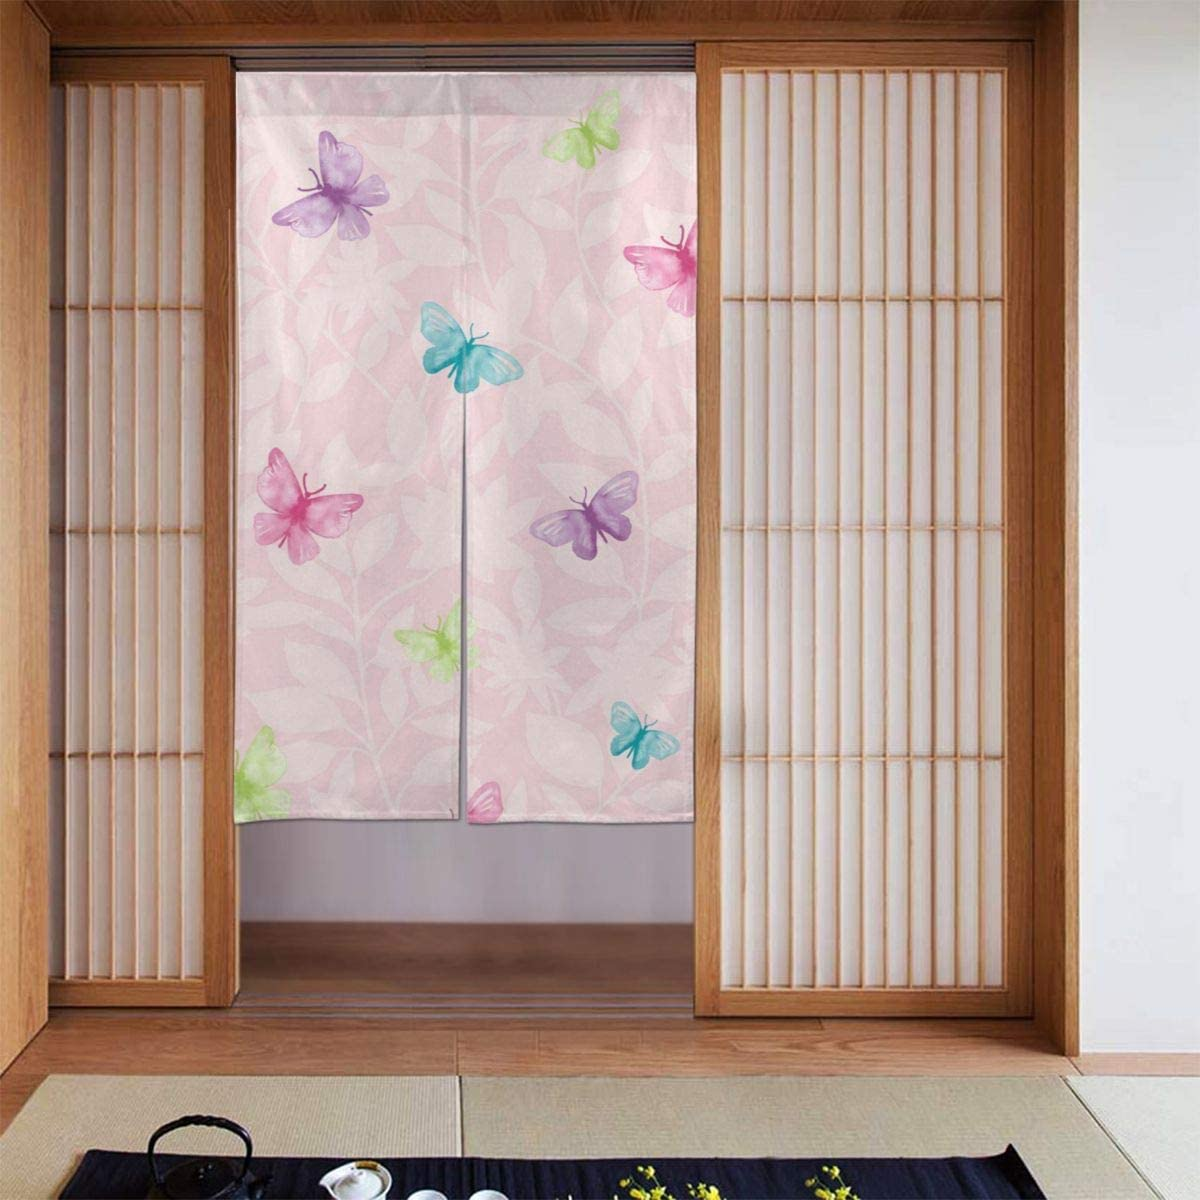 SLHFPX Noren Doorway Curtain Butterfly Floral Japanese Noren Doorway Curtain Long Tapestry Door Curtains Decor Dividers for Home Kitchen Bedroom Bathroom Living Room Office